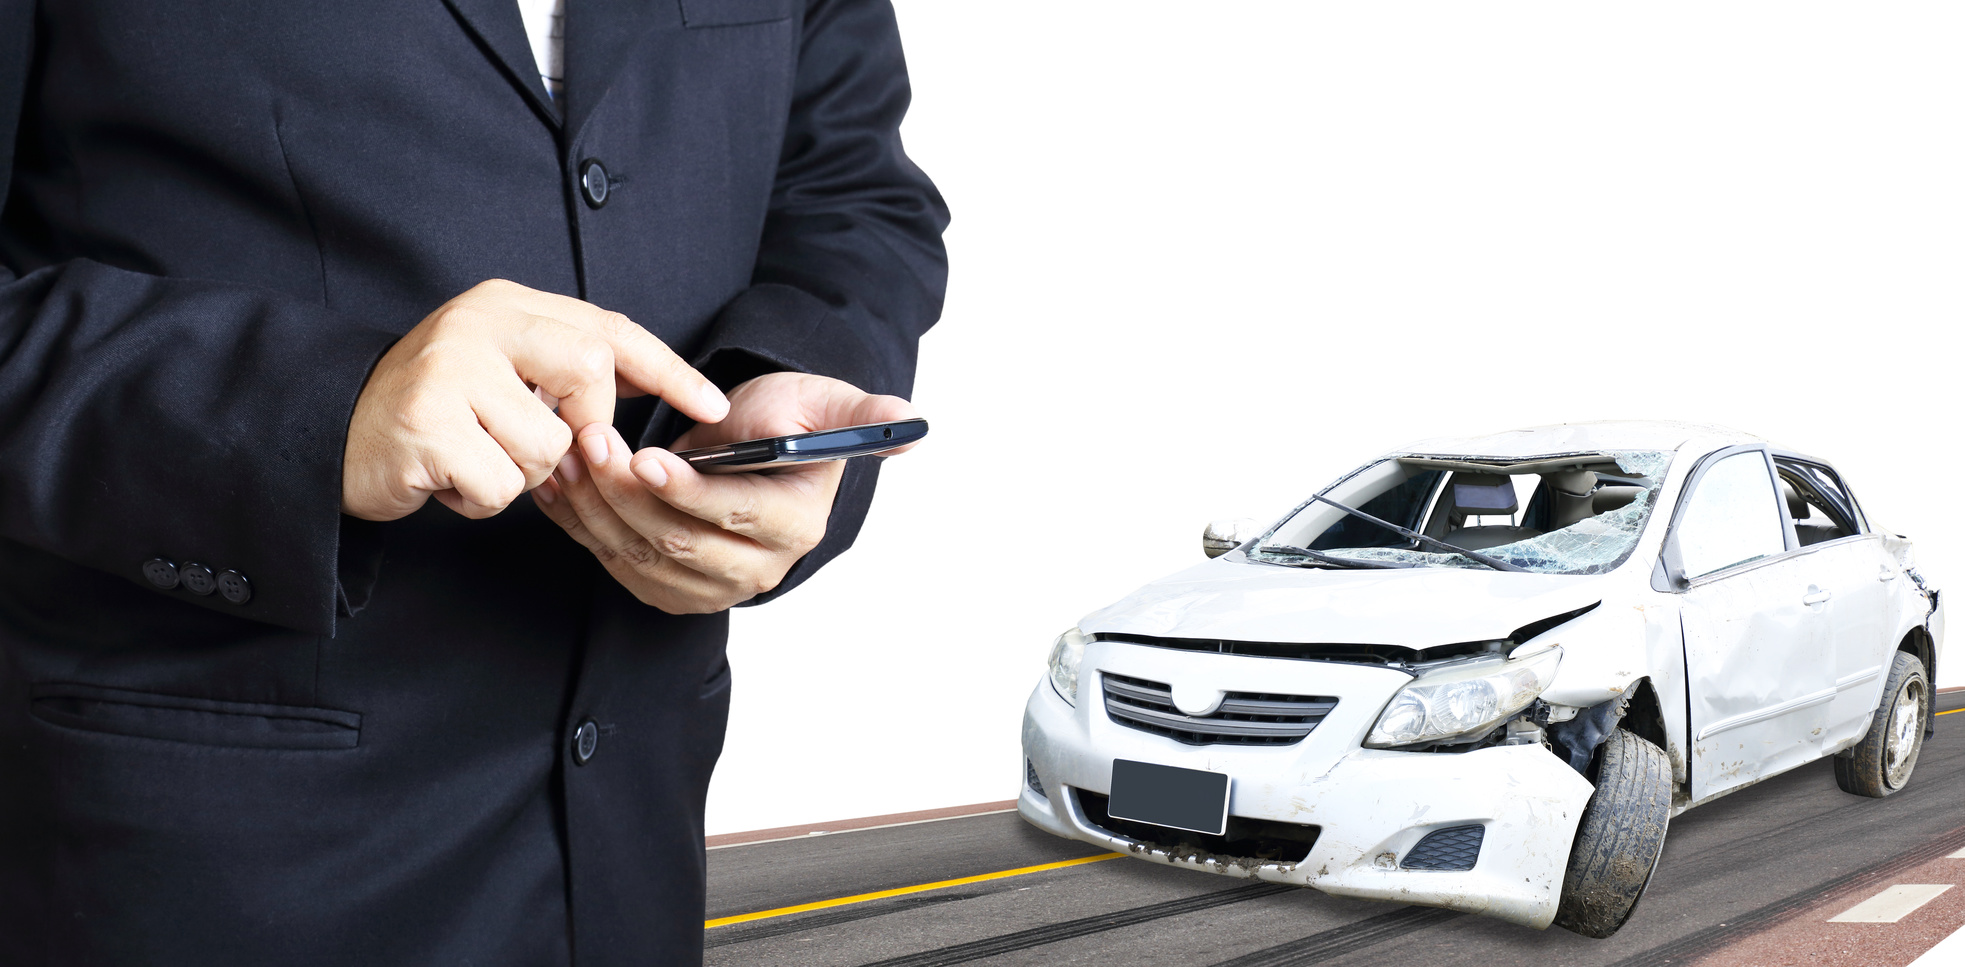 Auto Collision Damage Repair from Miracle Body and Paint San Antonio Texas